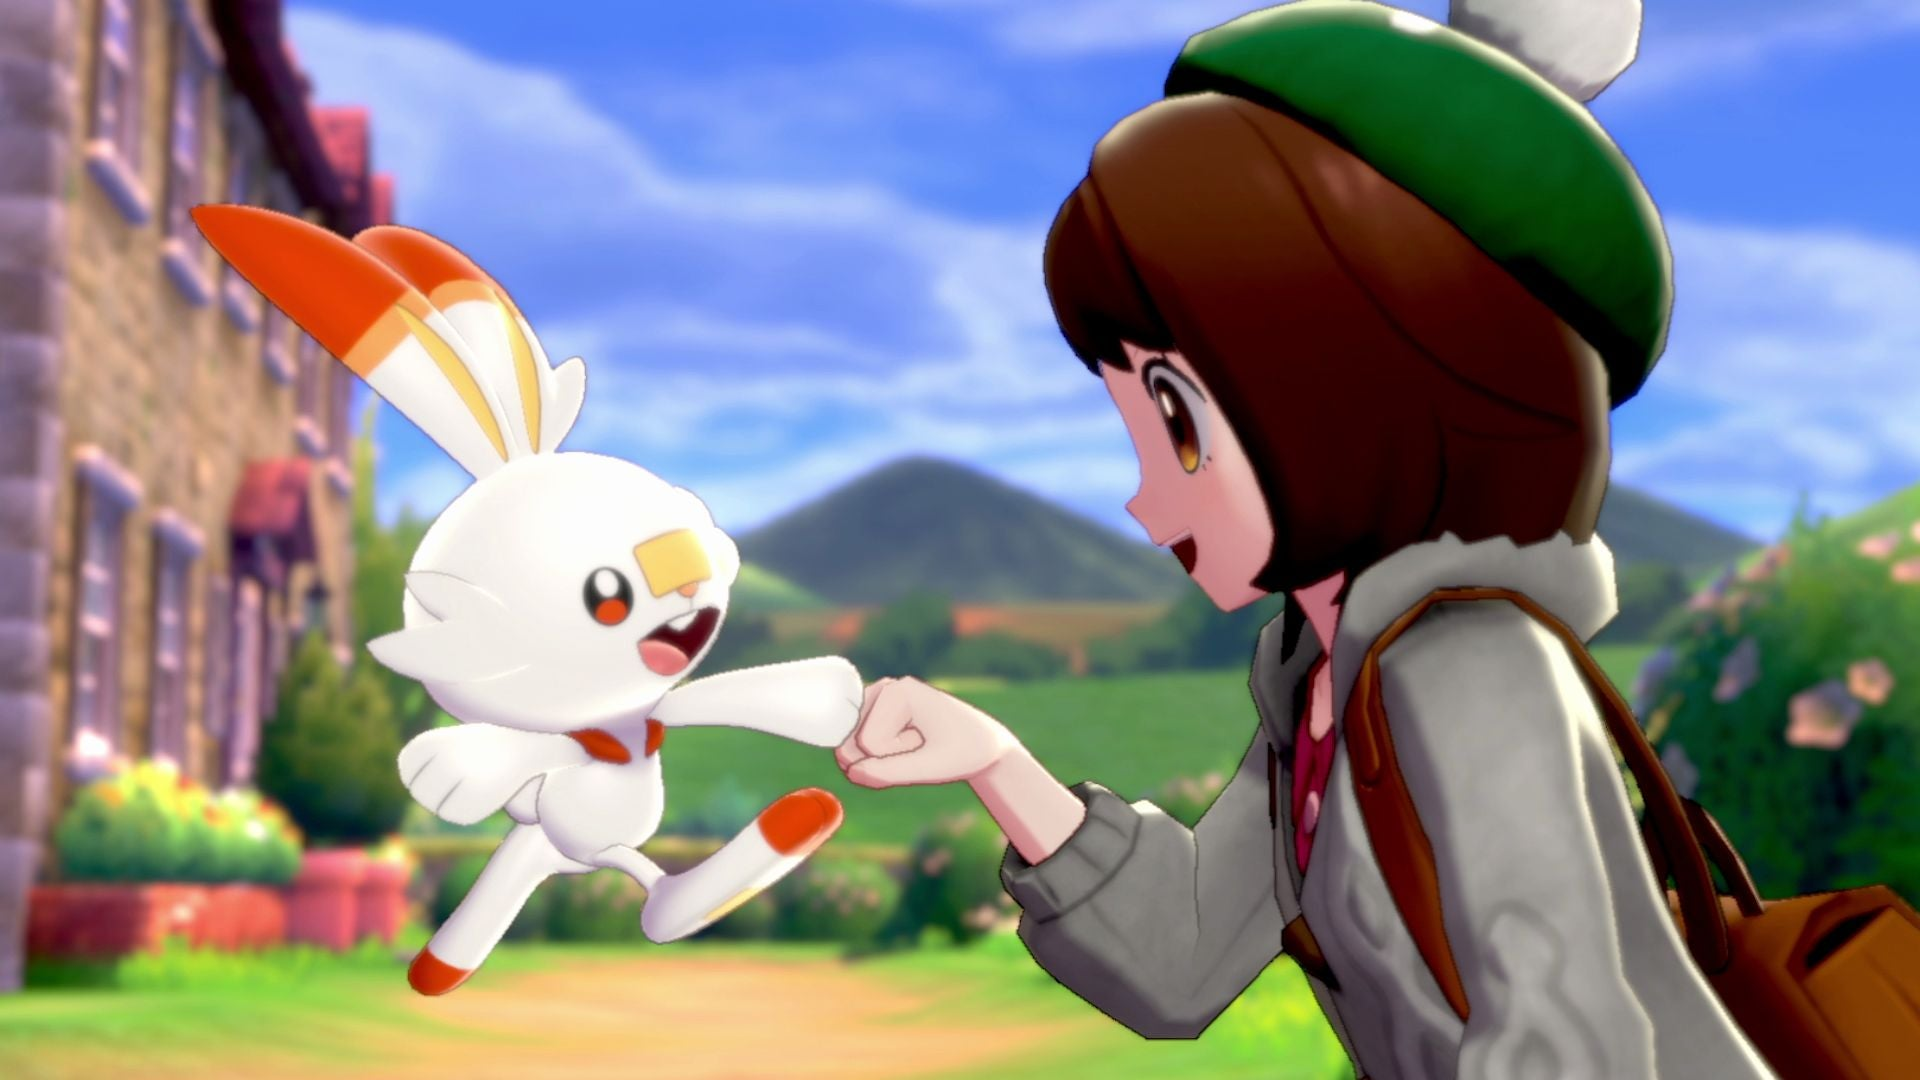 Pokémon Sword And Shield Director Says It's About 'Growing And Evolving' — For The Trainer, Too